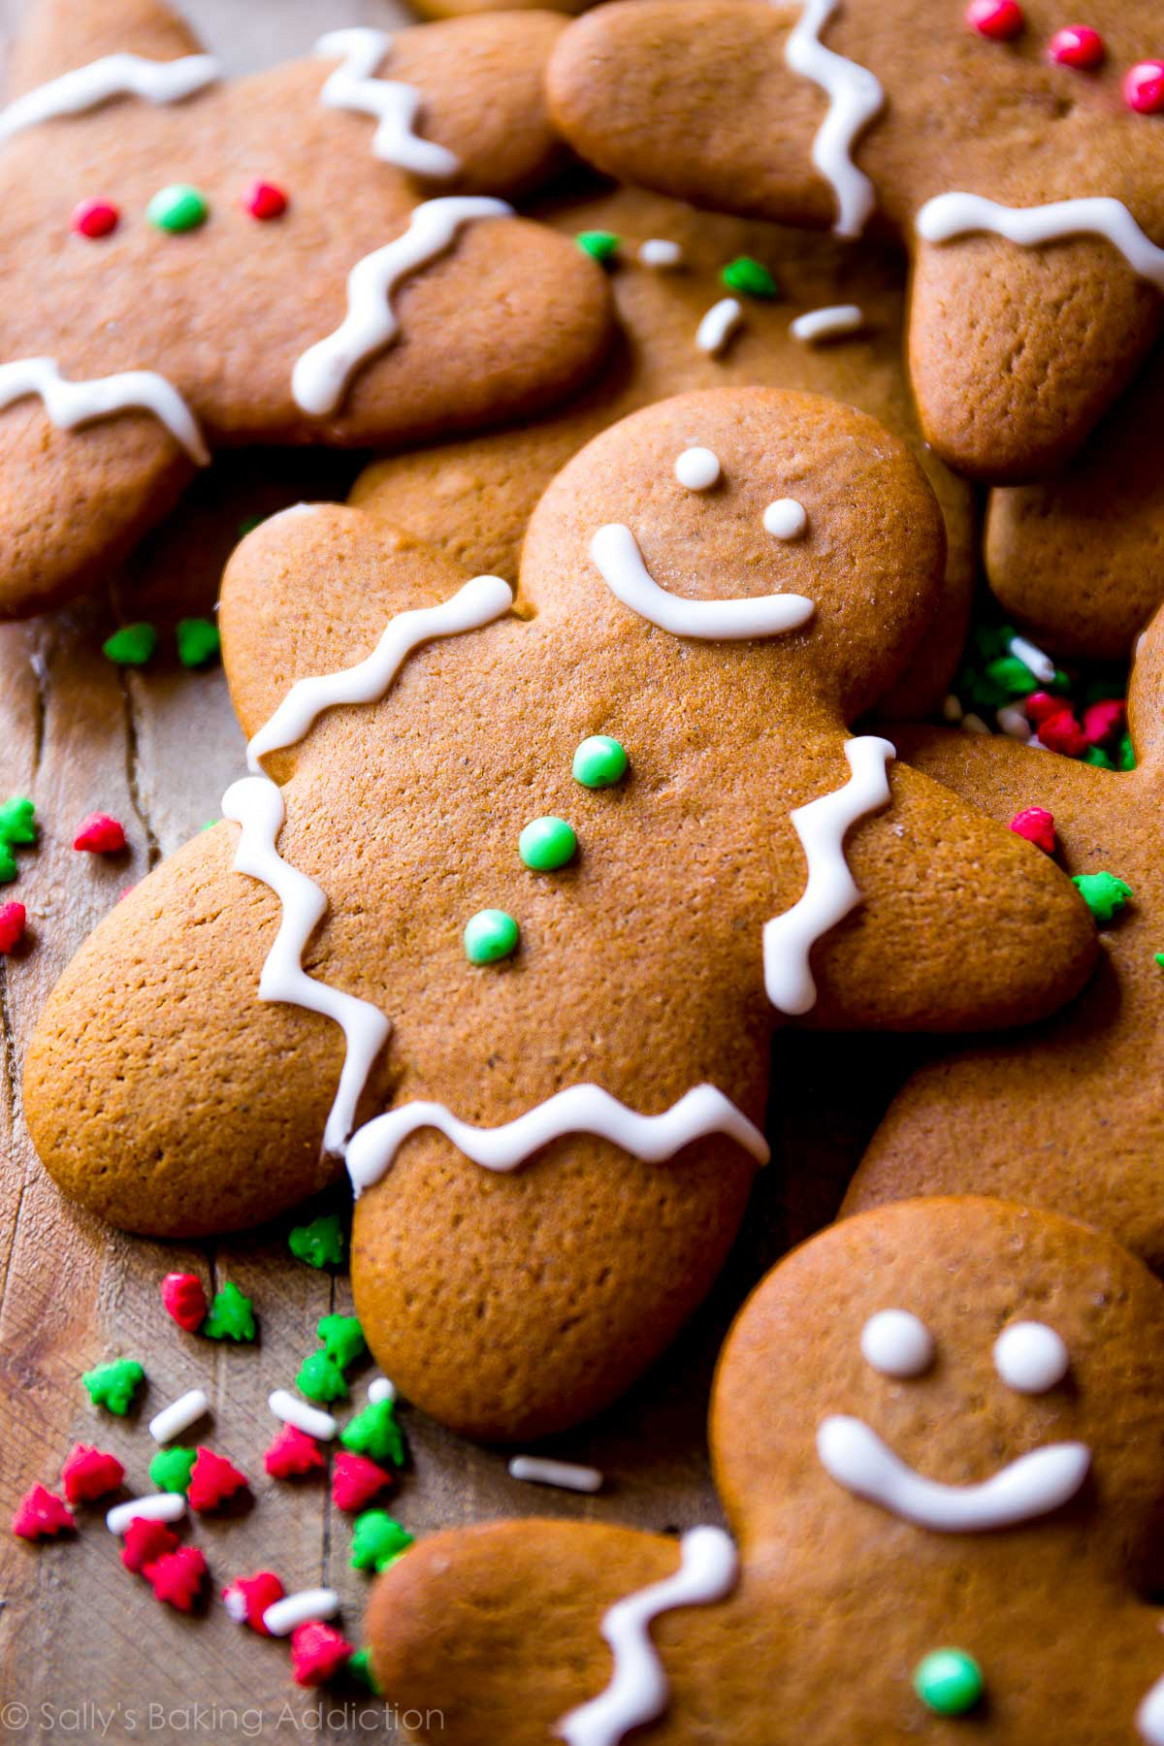 My Favorite Gingerbread Men Recipe - Sallys Baking Addiction